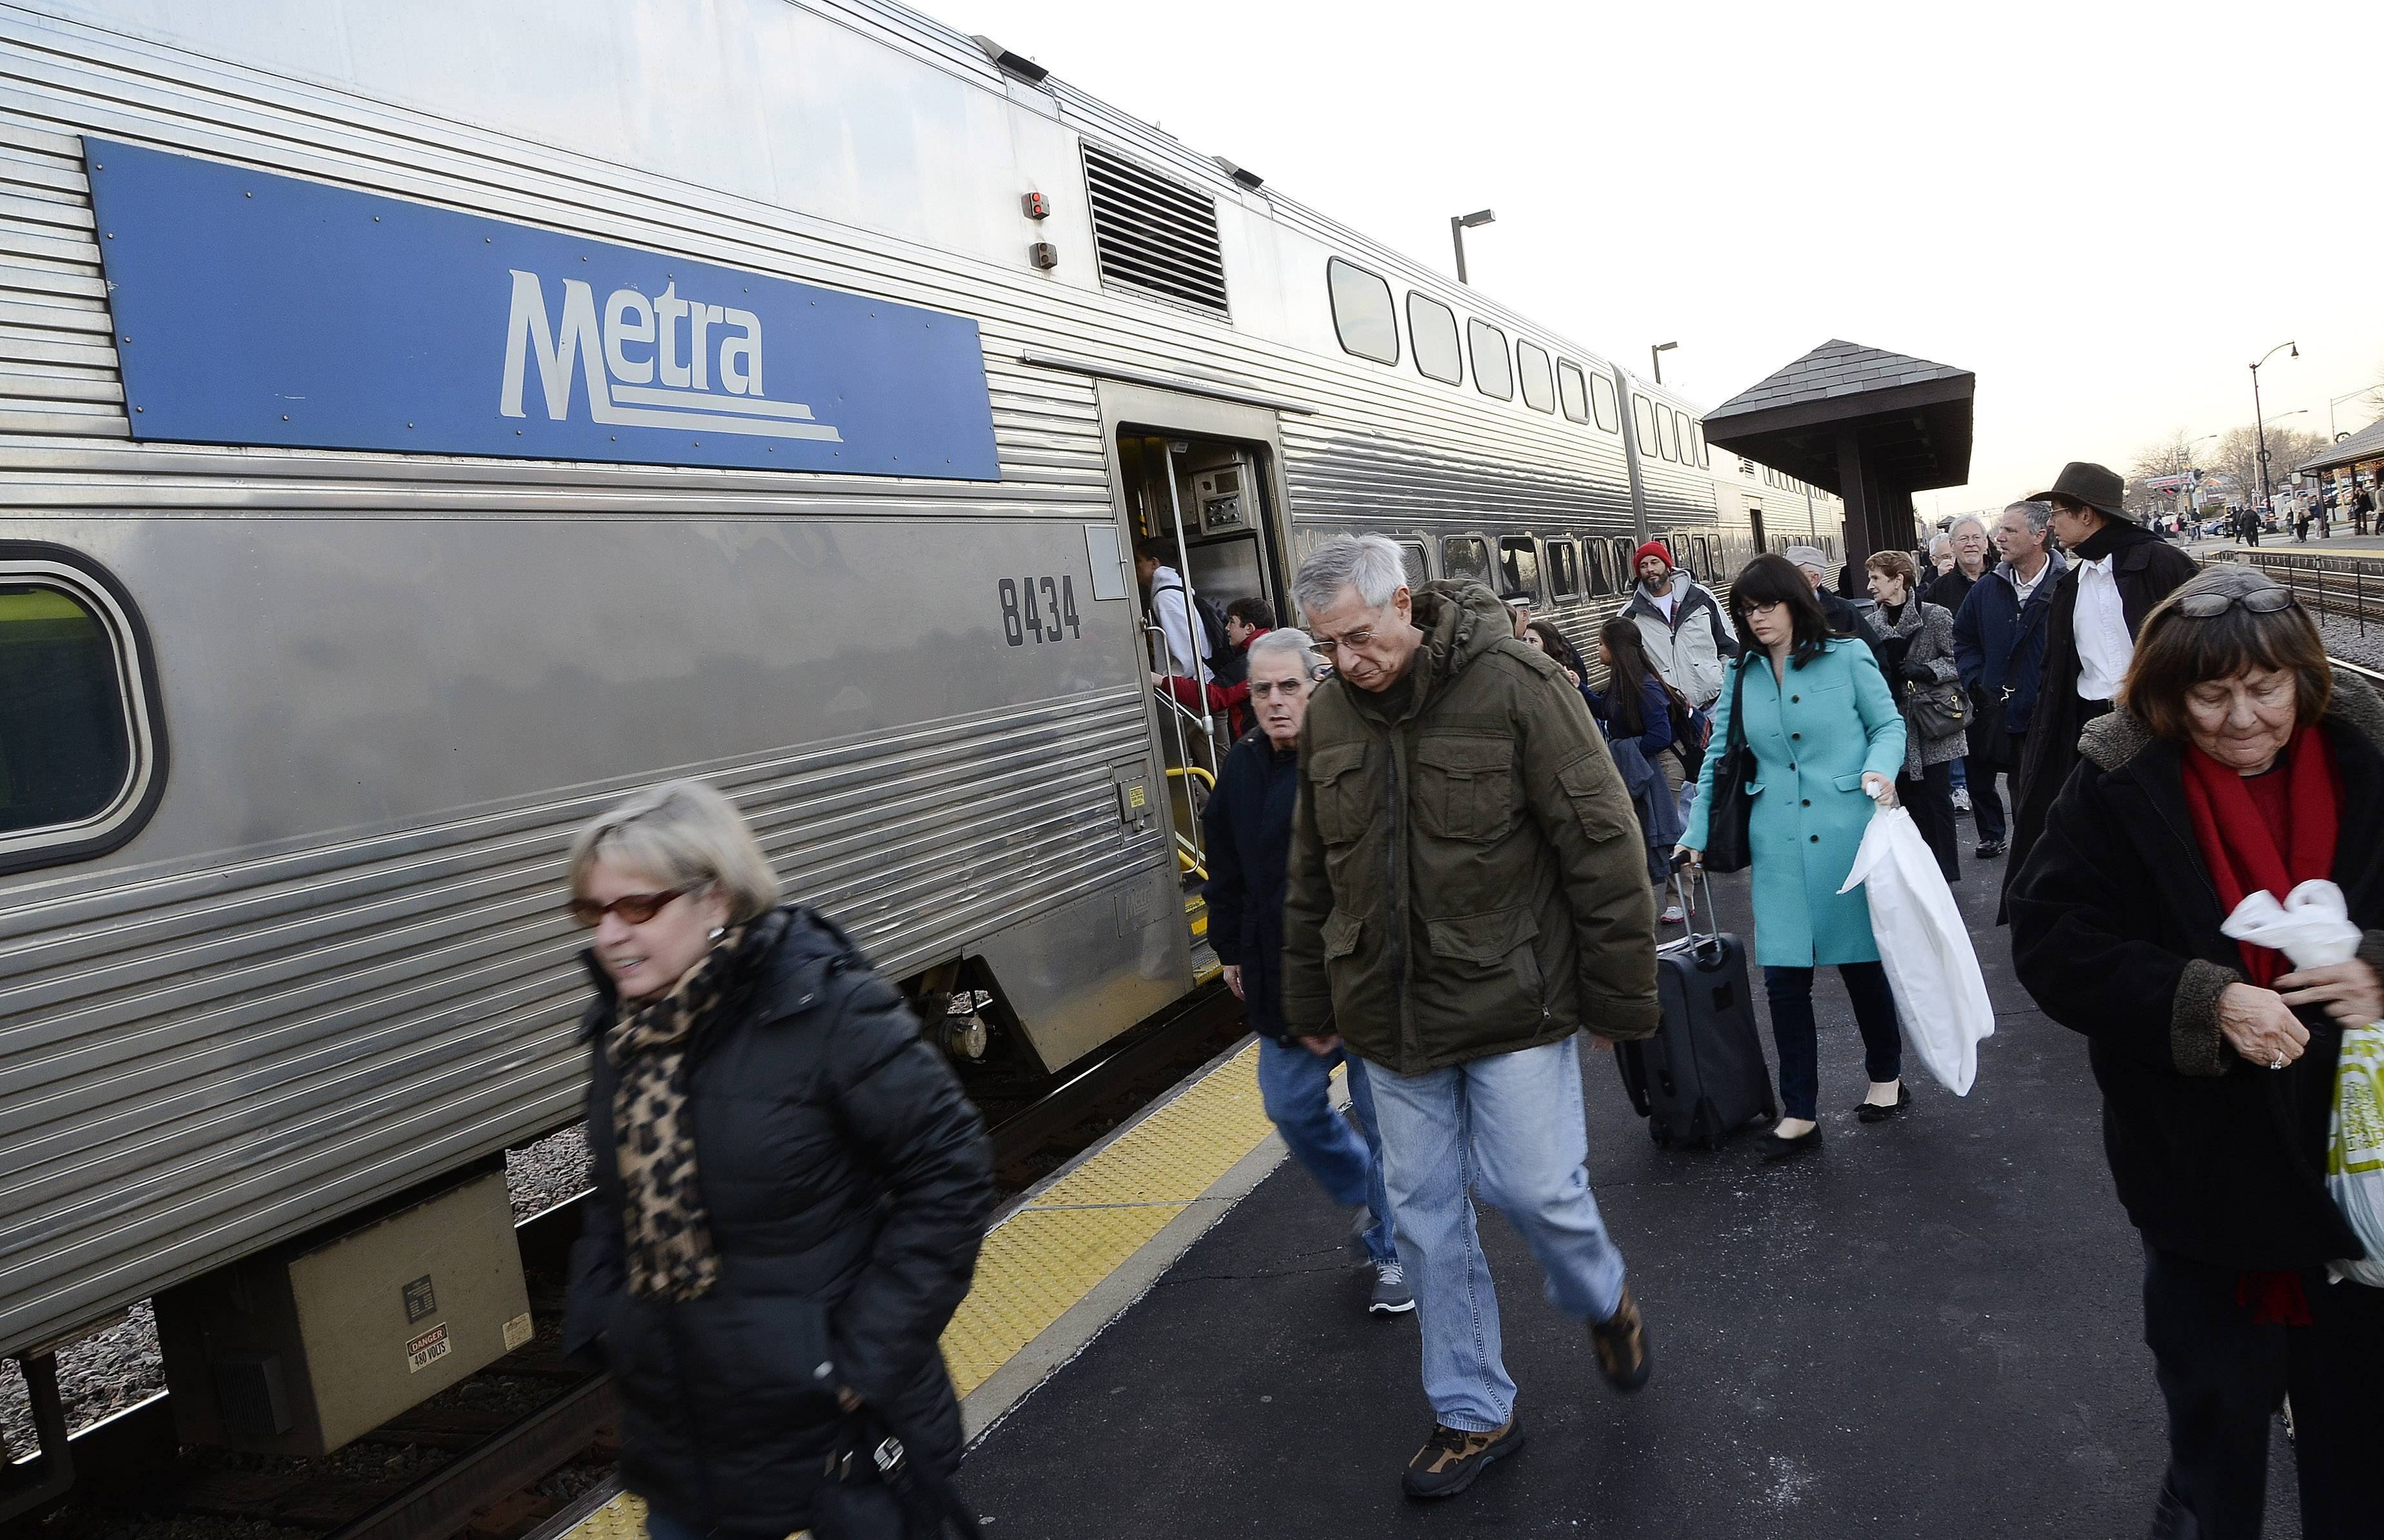 Metra's latest fare hike arrives this week: Where's money going?